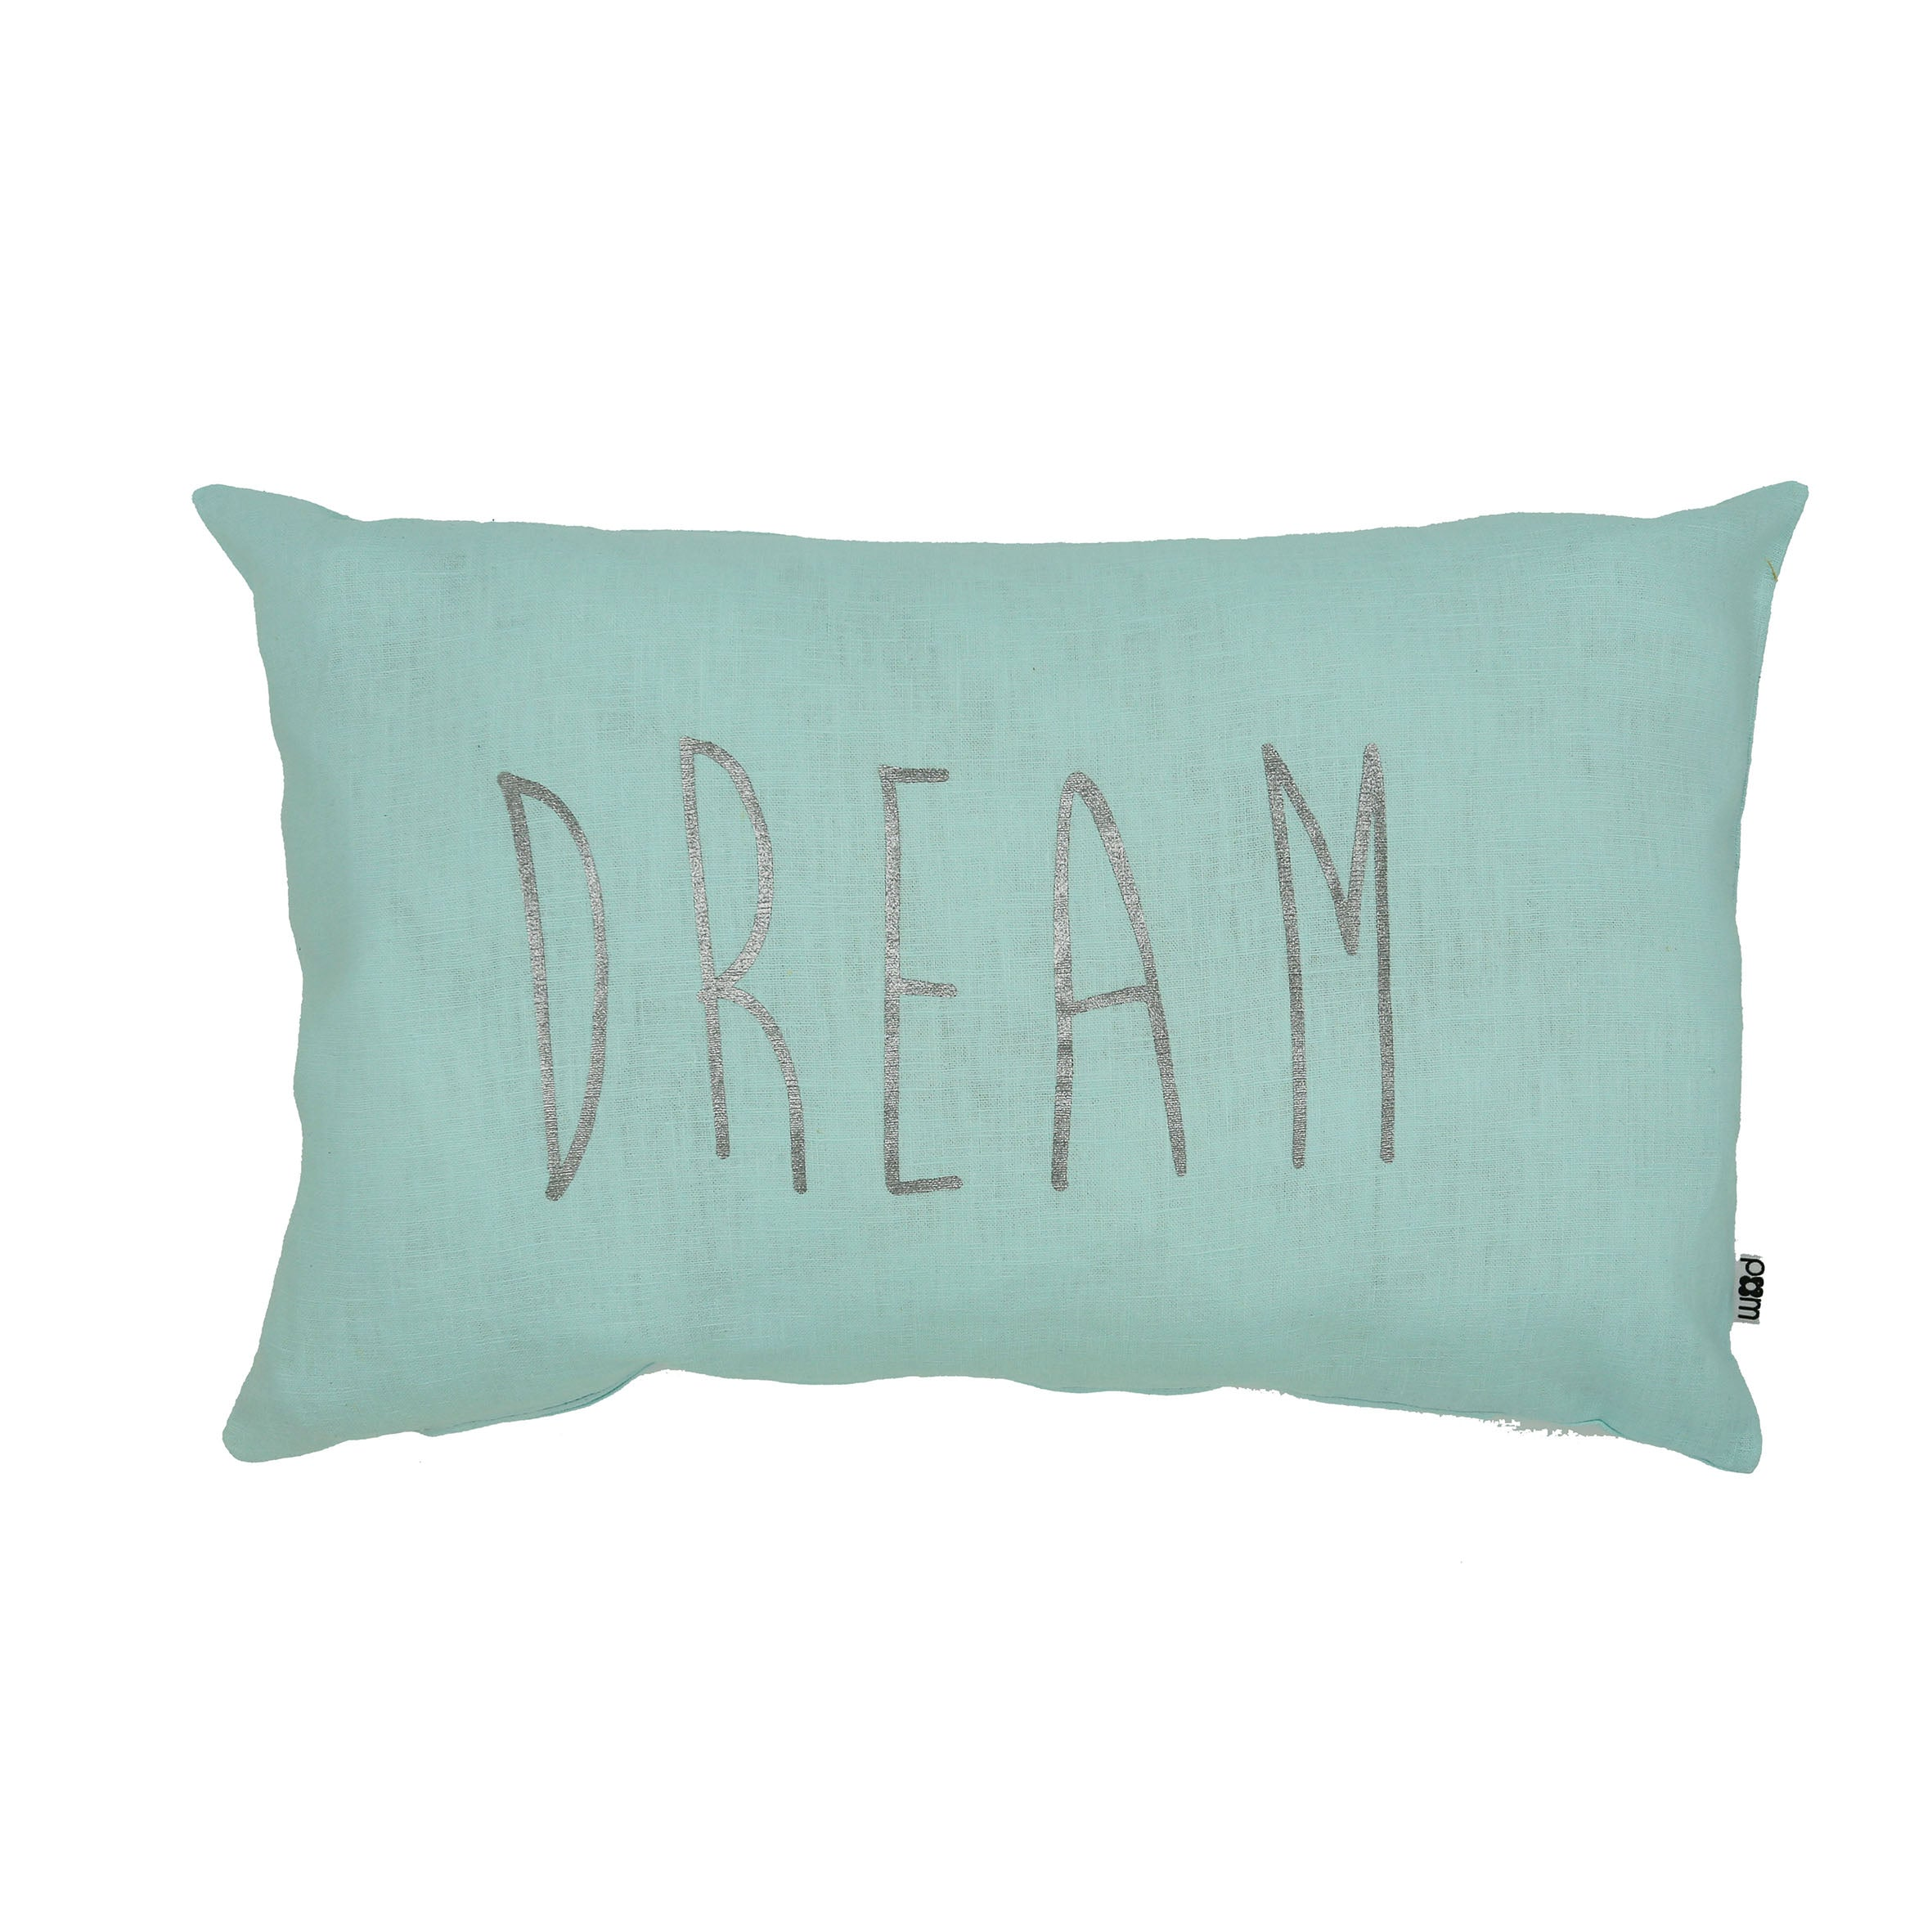 Handmade Cushion (Dream) - Mint